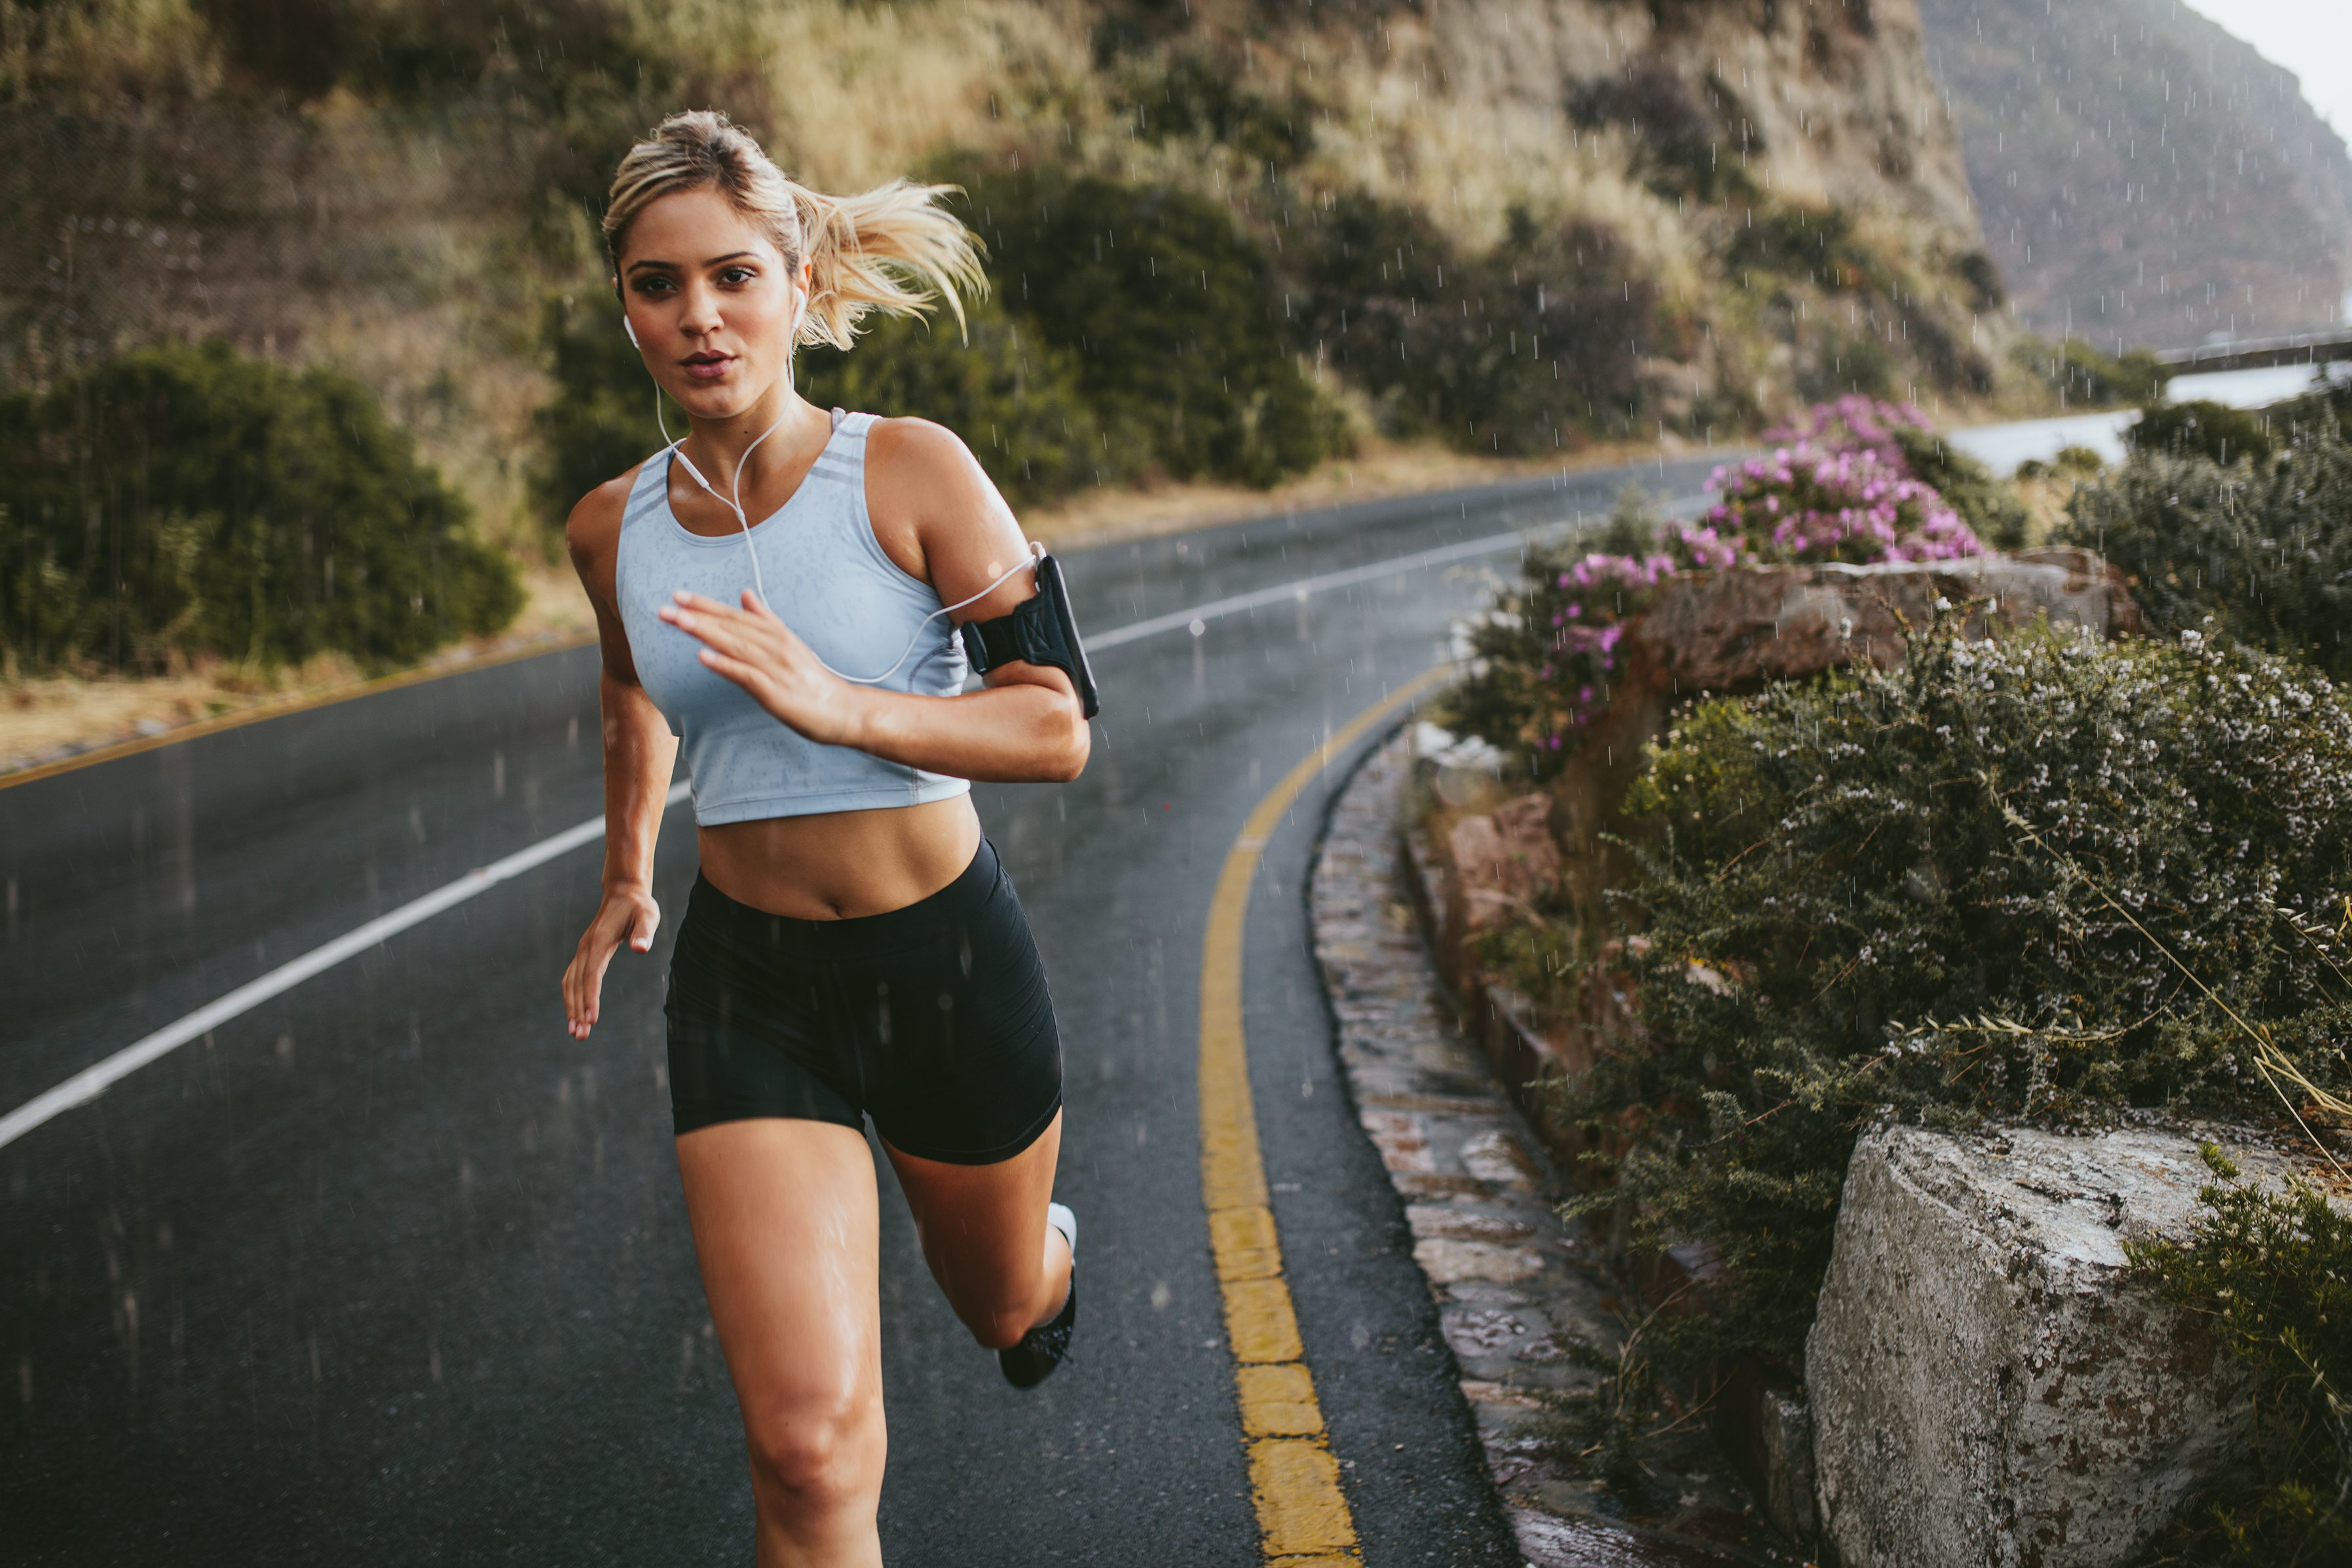 Sexy woman running 4